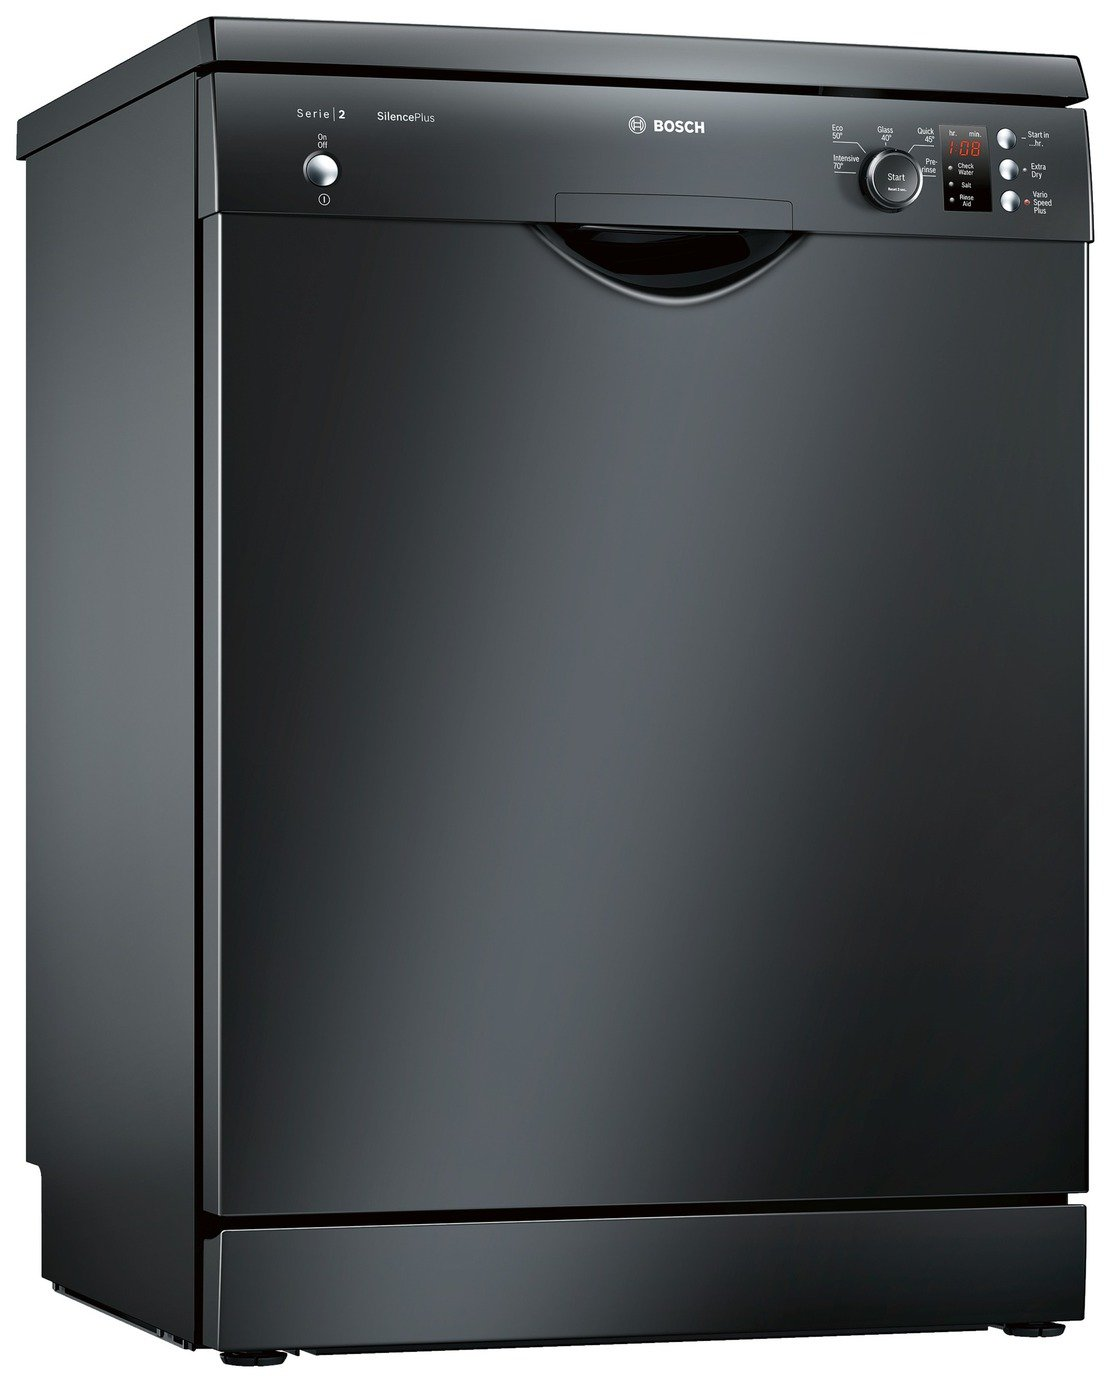 Bosch SMS25AB00G Full Size Dishwasher - Black from Bosch